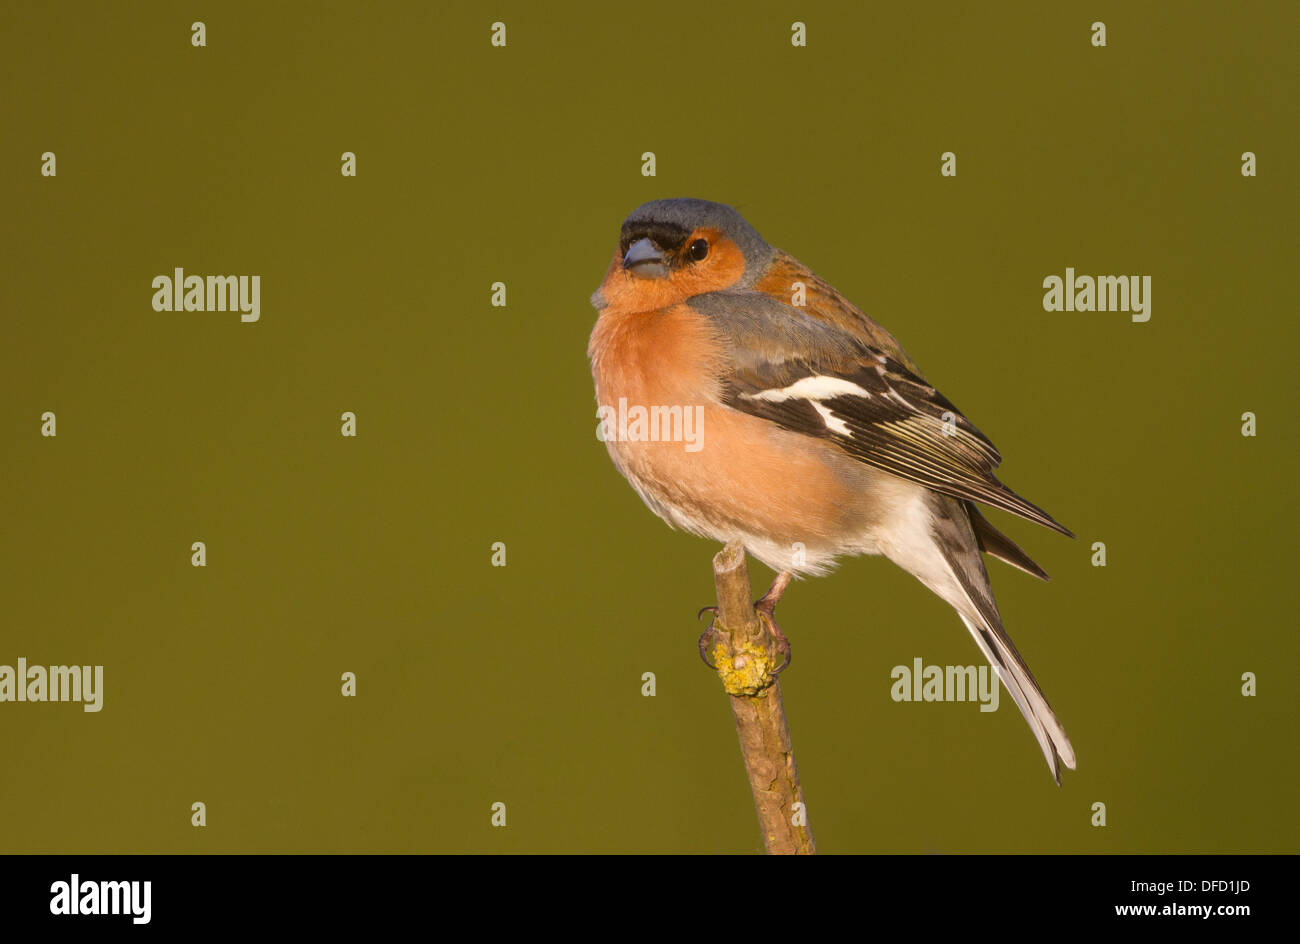 male Chaffinch (Fringilla coelebs) against a green background - Stock Image